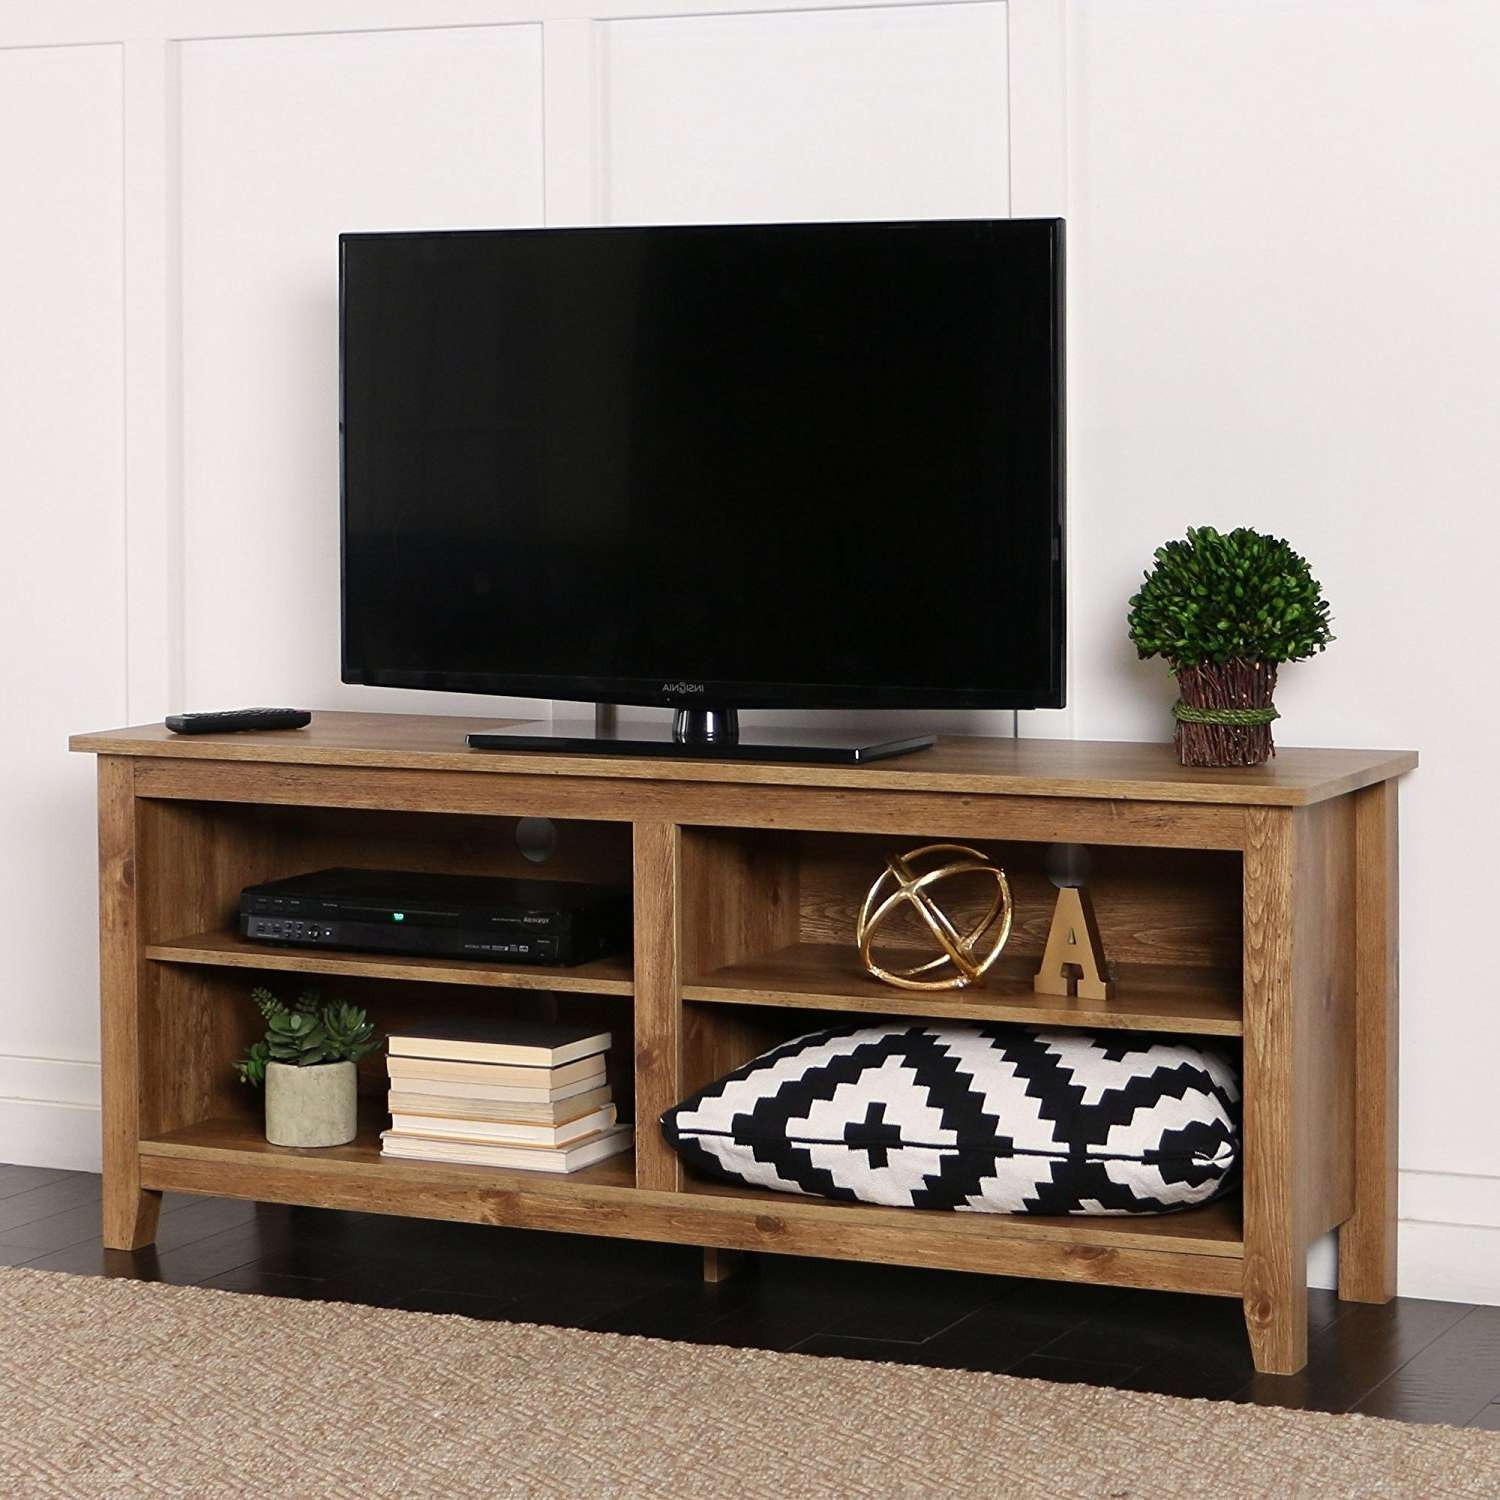 Inspirational Corner Tv Stands For 55 Inch Tv 90 For Your Interior Regarding 40 Inch Corner Tv Stands (View 11 of 15)